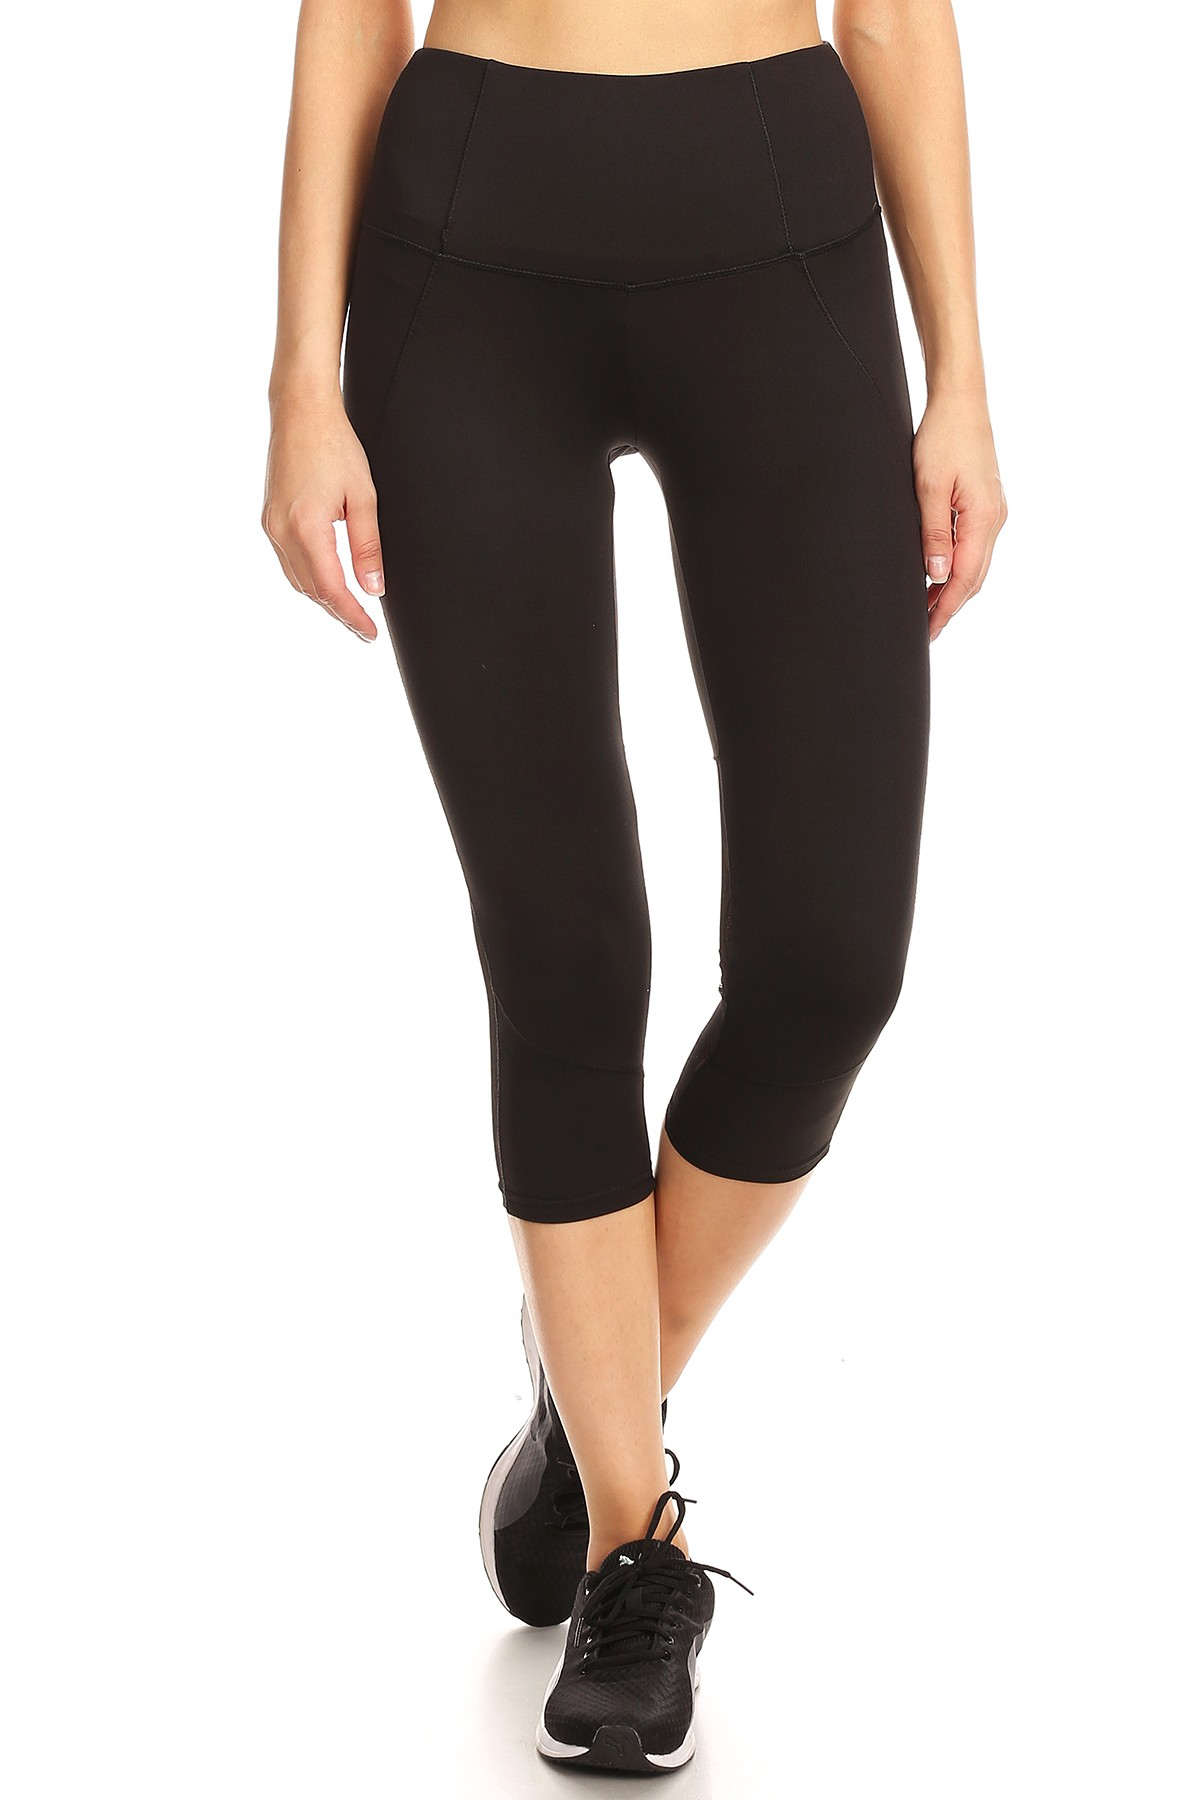 Shop a great selection of Clearance Women's Activewear at Nordstrom Rack. Find designer Clearance Women's Activewear up to 70% off and get free shipping on orders over $